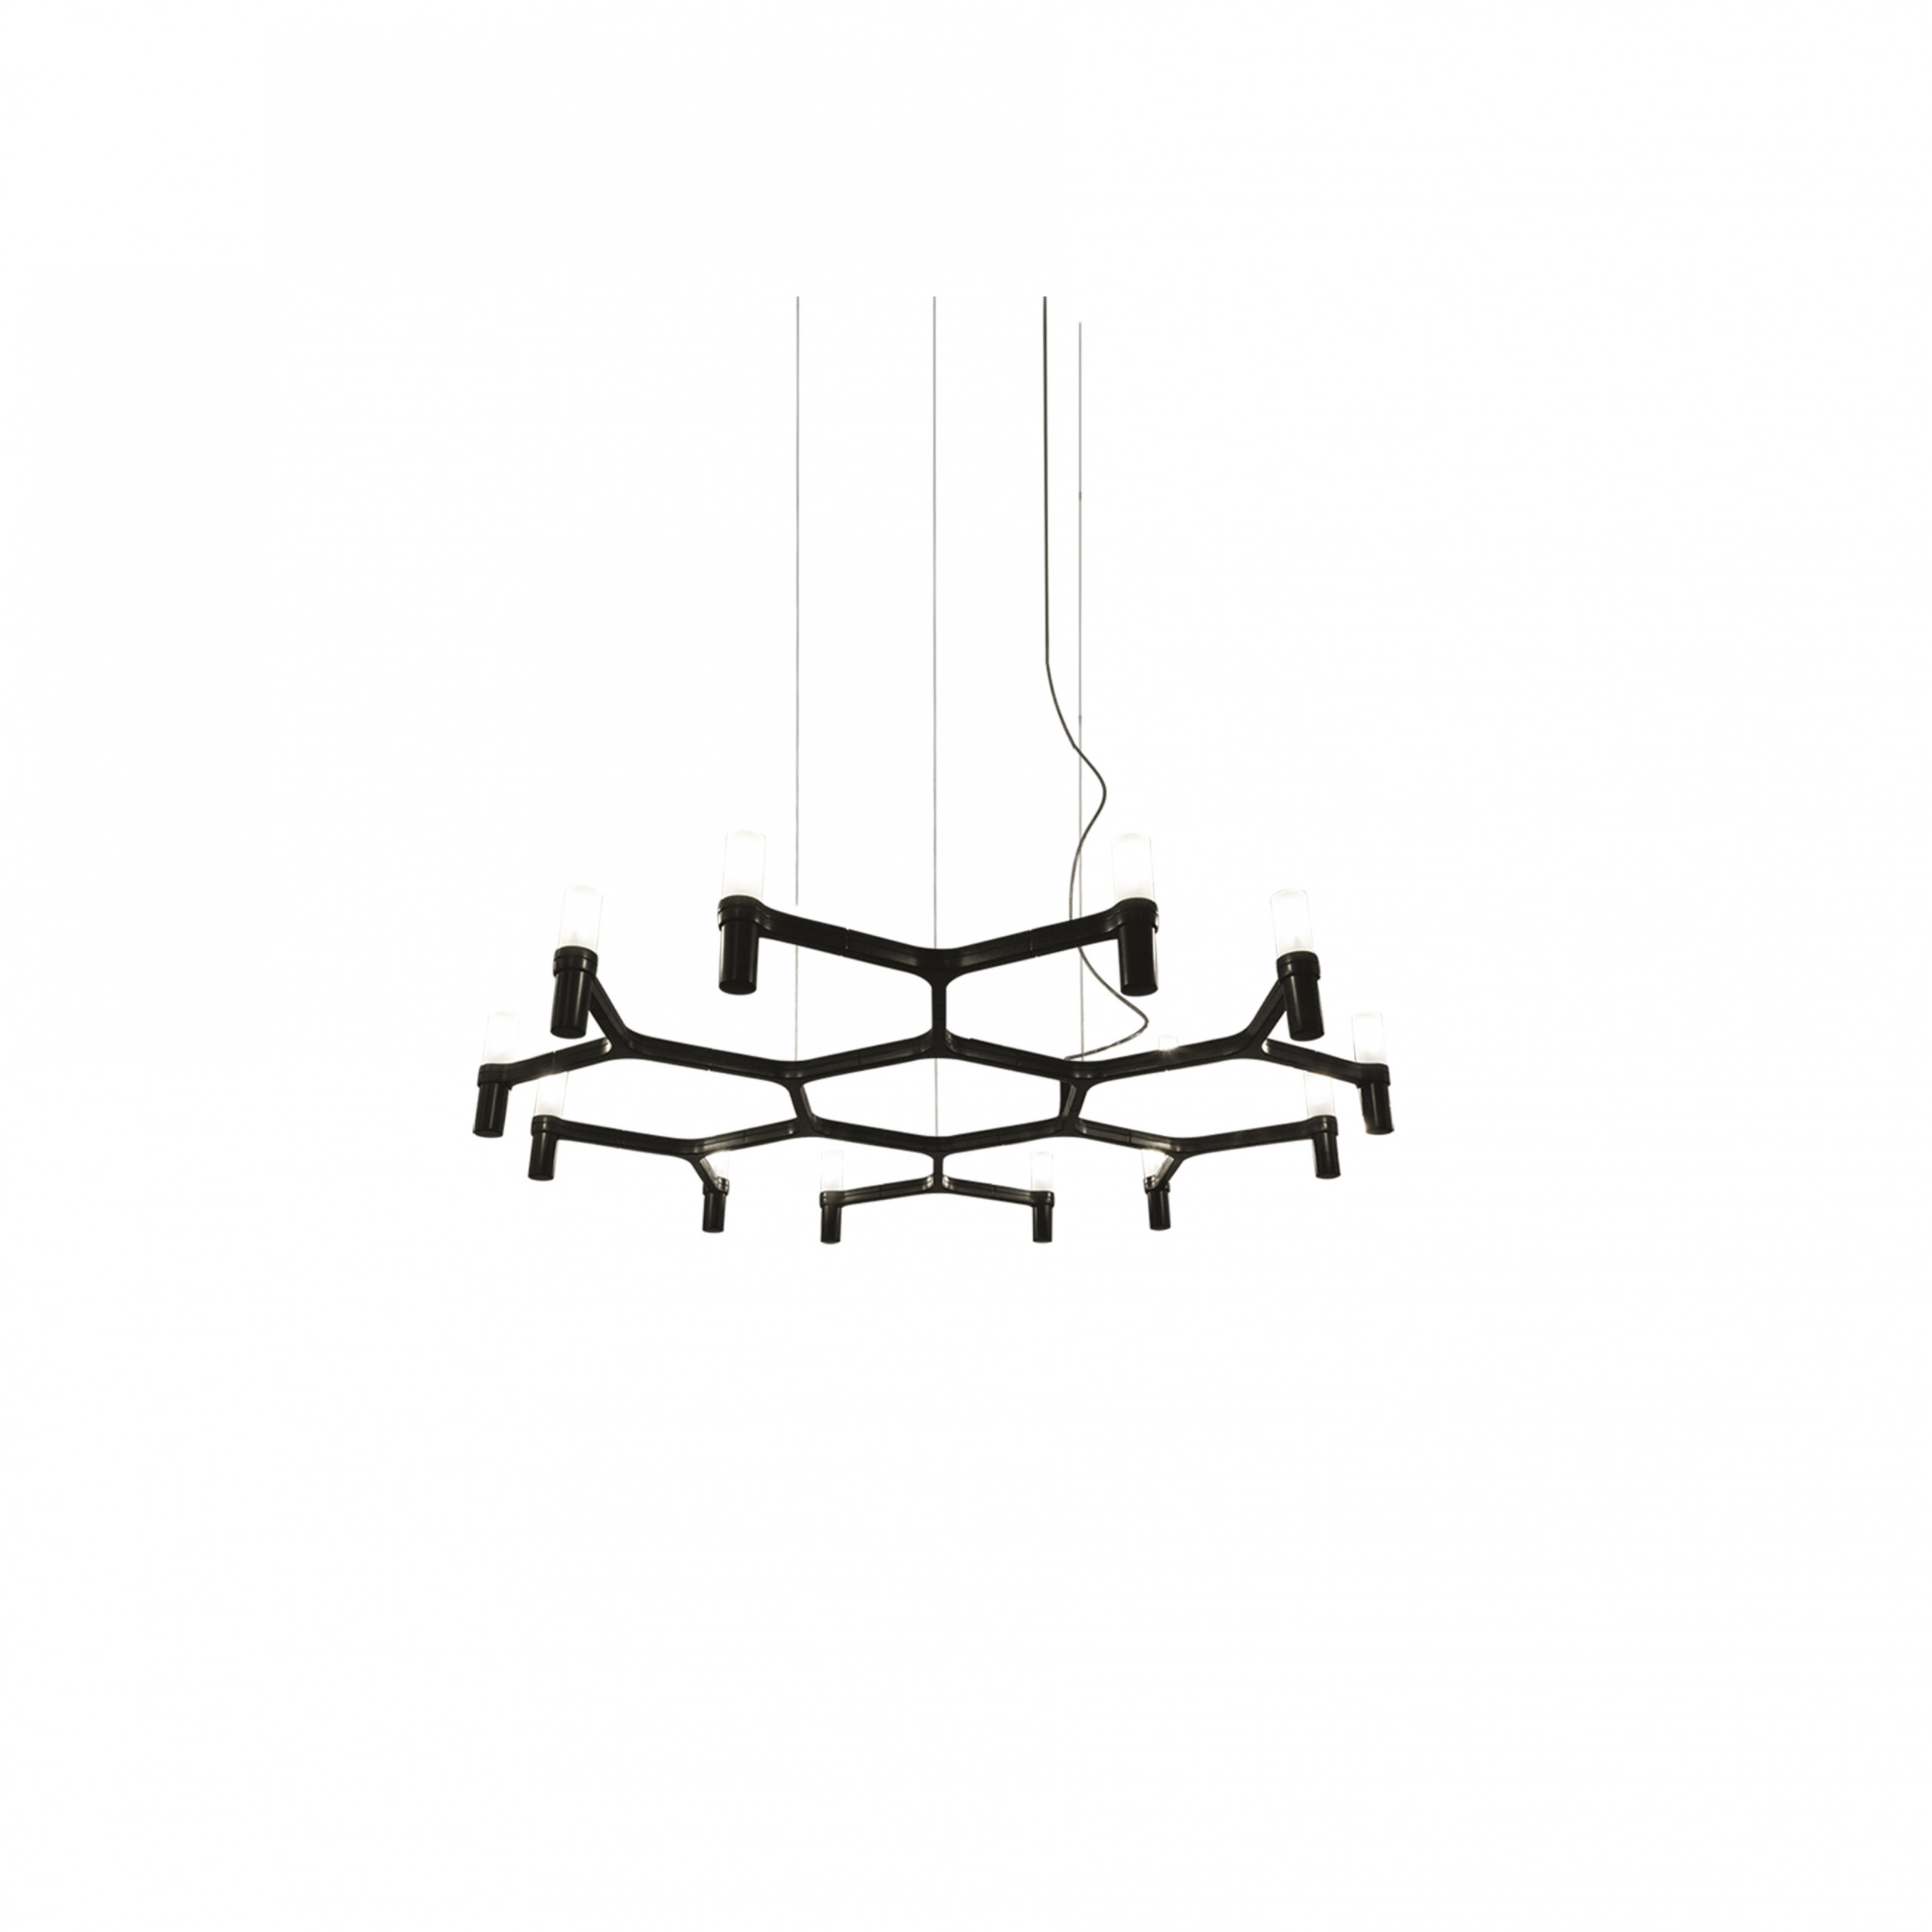 Crown Plana Minor Pendant Lamp - A family composed by pendant chandeliers whose shape is inspired by the outline of the snow crystal. Modular lamps realized with a die-casted aluminium structure and sandblasted glass diffusers. The structure is available in different versions hand-polished aluminium, glossy gold plated or black plated, painted in matt white, matt black, or matt gold. Widespread light. Double switch for the Summa and Magnum versions. The pendant versions are equipped with transparent cable, red cable on request. Available a NEMO LED G9 kit. Prices are with bulb not included.  | Matter of Stuff